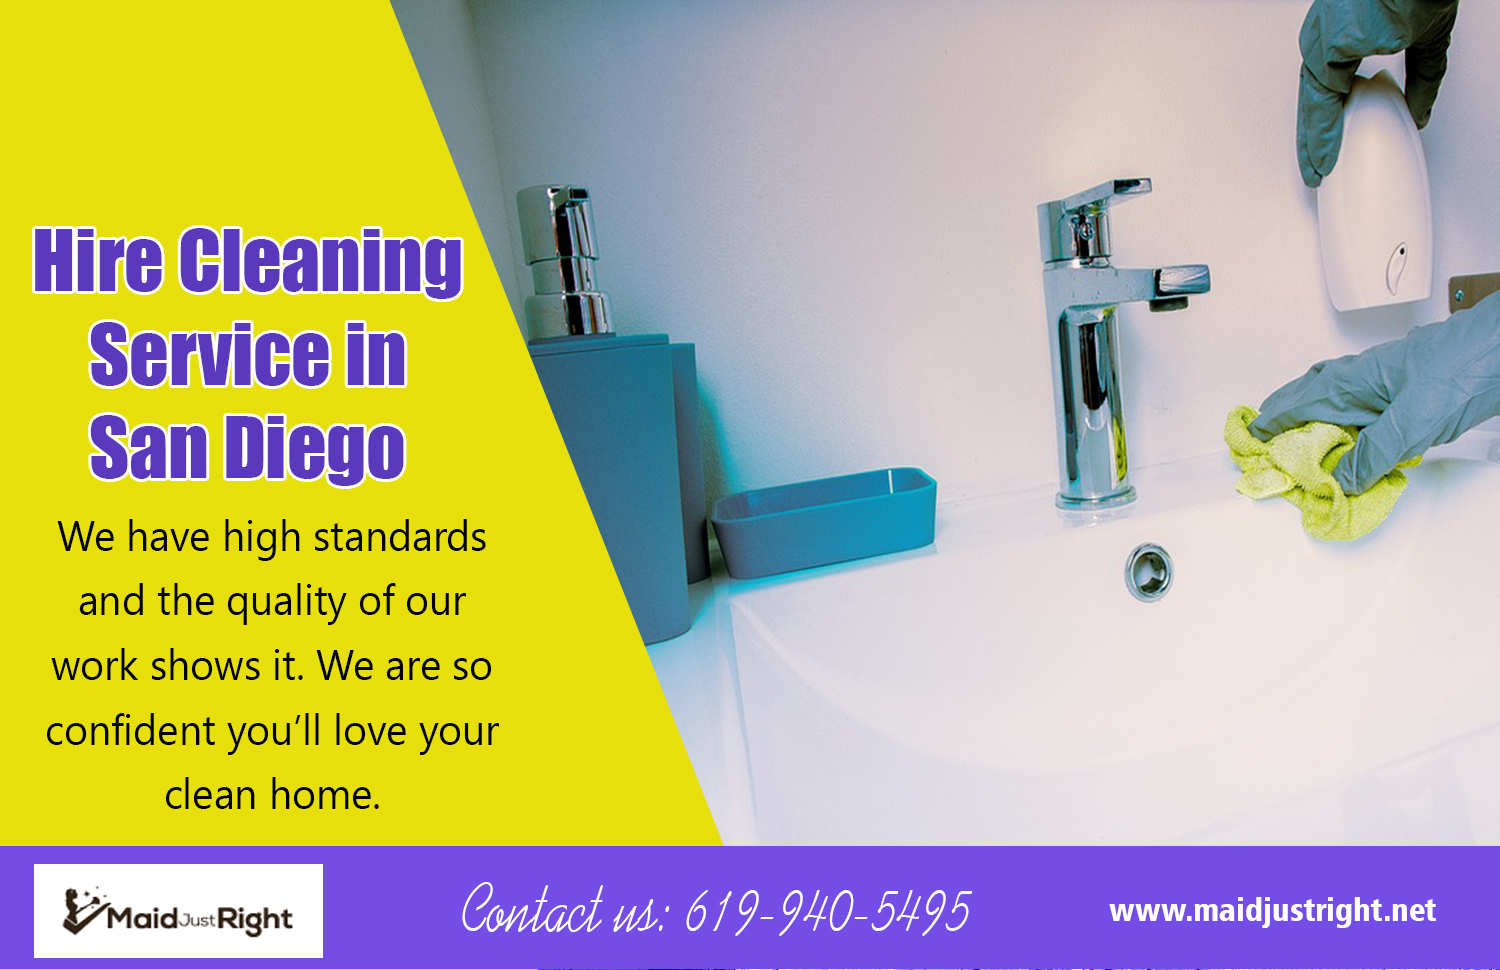 Hire Cleaning Service In San Diego | Call Us - 619-940-5495 | maidjustright.net